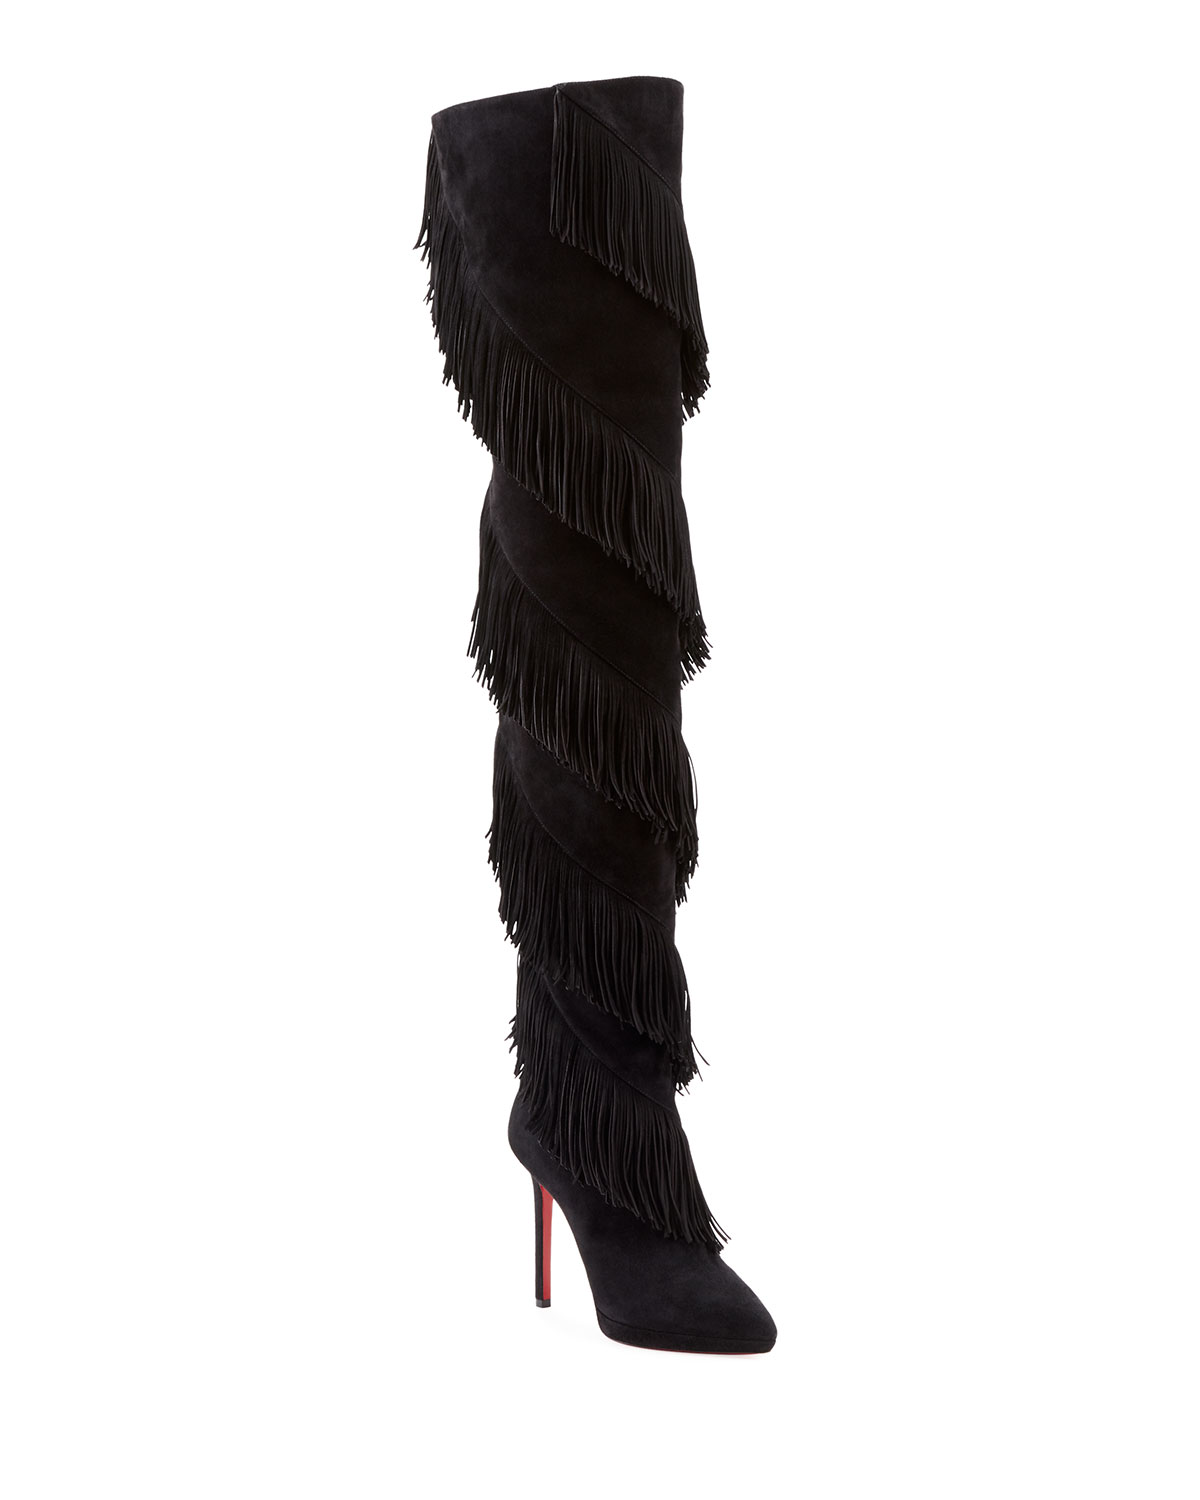 Bolcheva Fringe Red Sole Boots